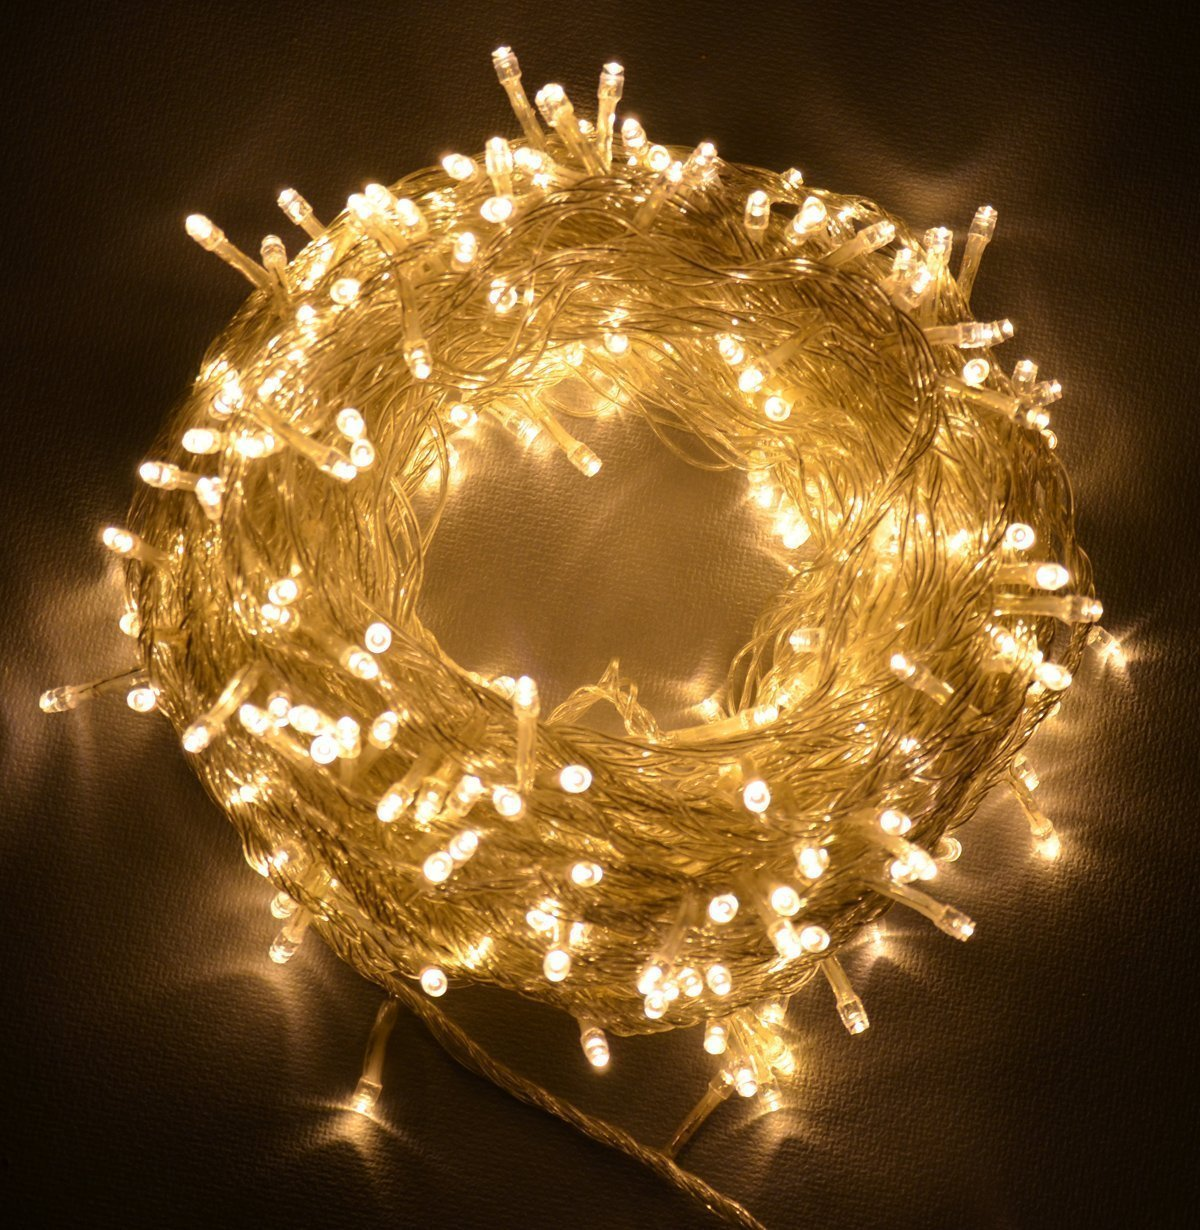 Proxima direct 100200300400500 led string fairy lights for proxima direct 100200300400500 led string fairy lights for christmas tree party wedding events garden 8 lighting modes memory function warm white mozeypictures